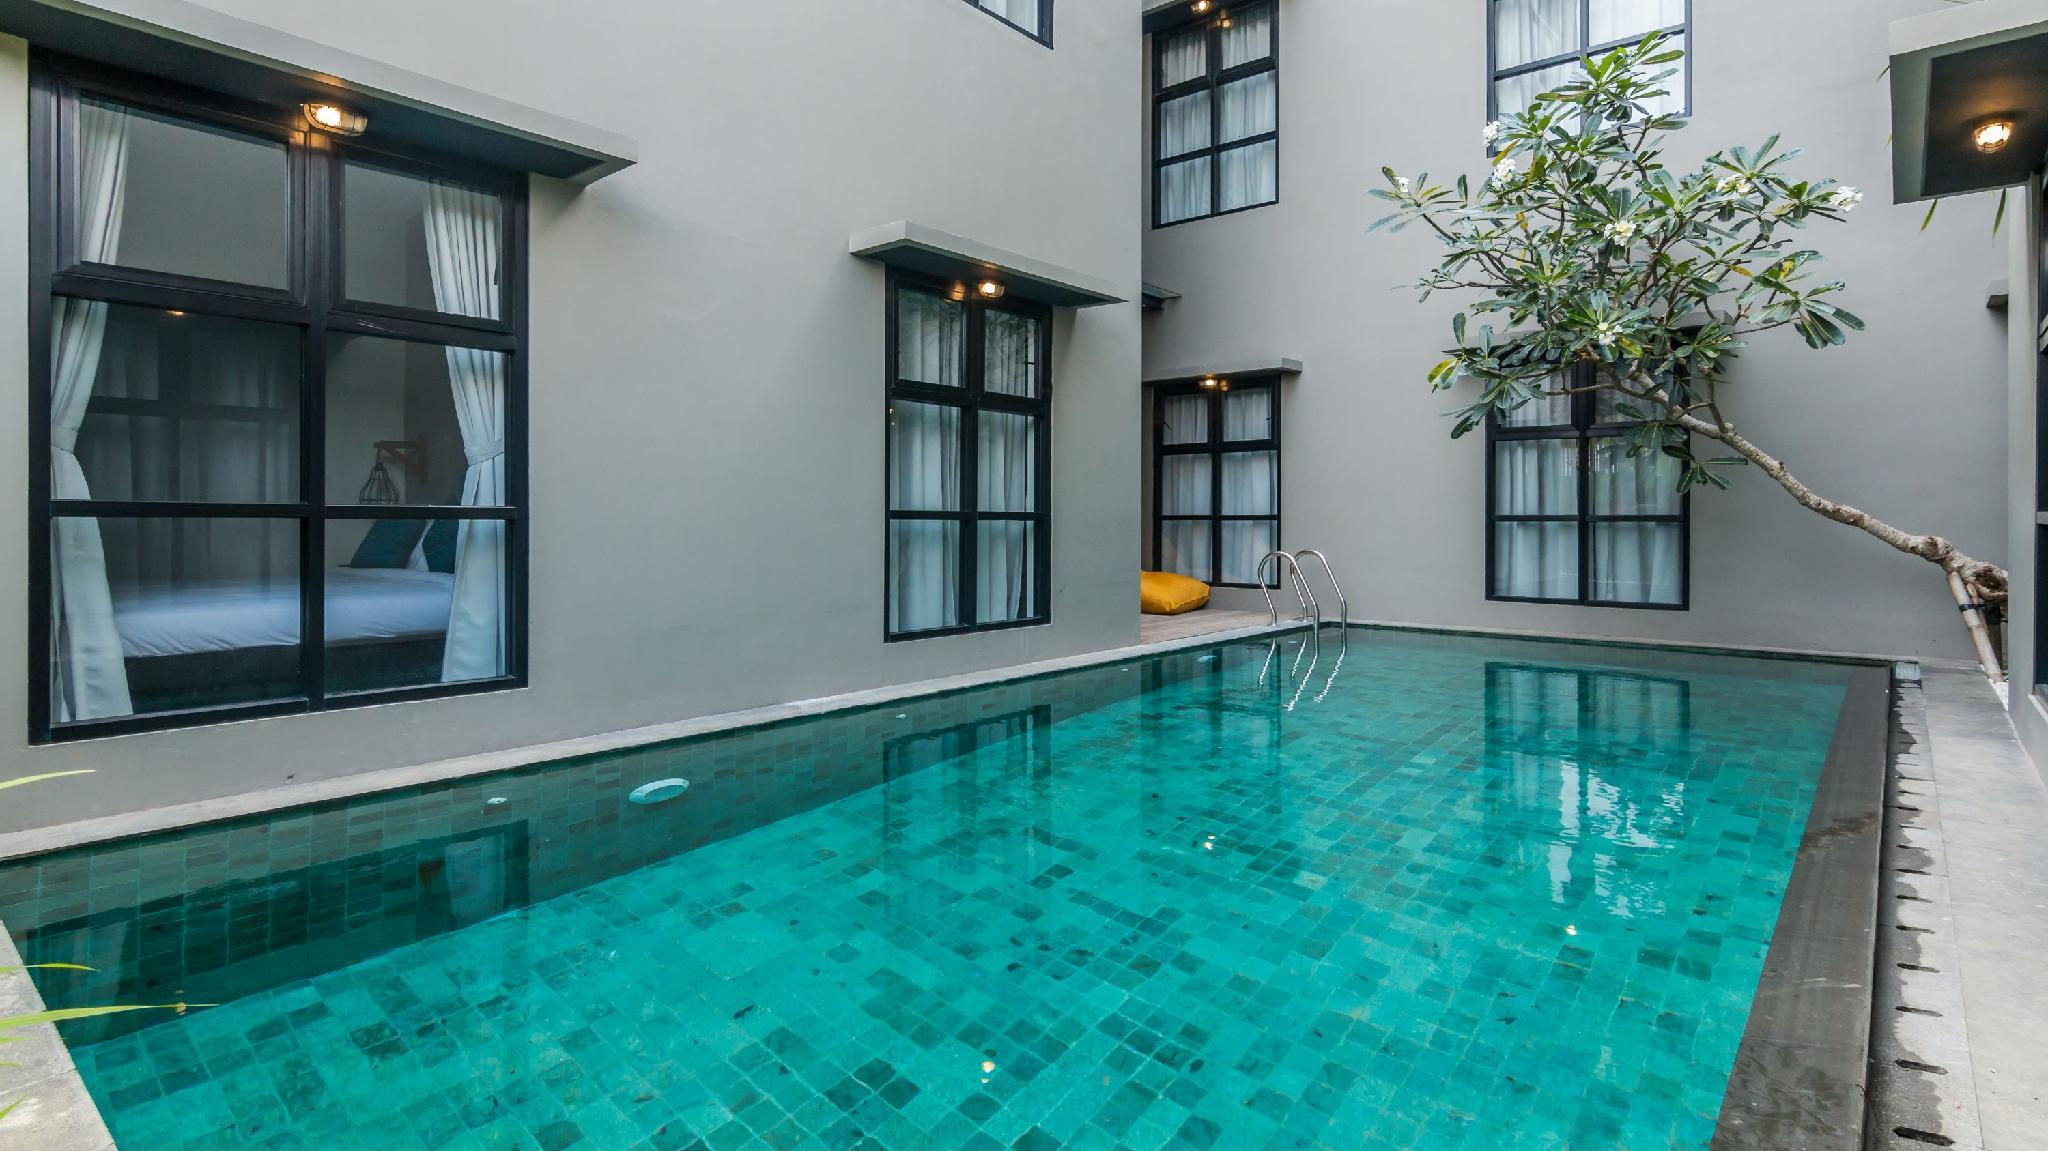 Hotel Review: ZEN Rooms Plawa seminyak – Room Rates, Picture and Deals